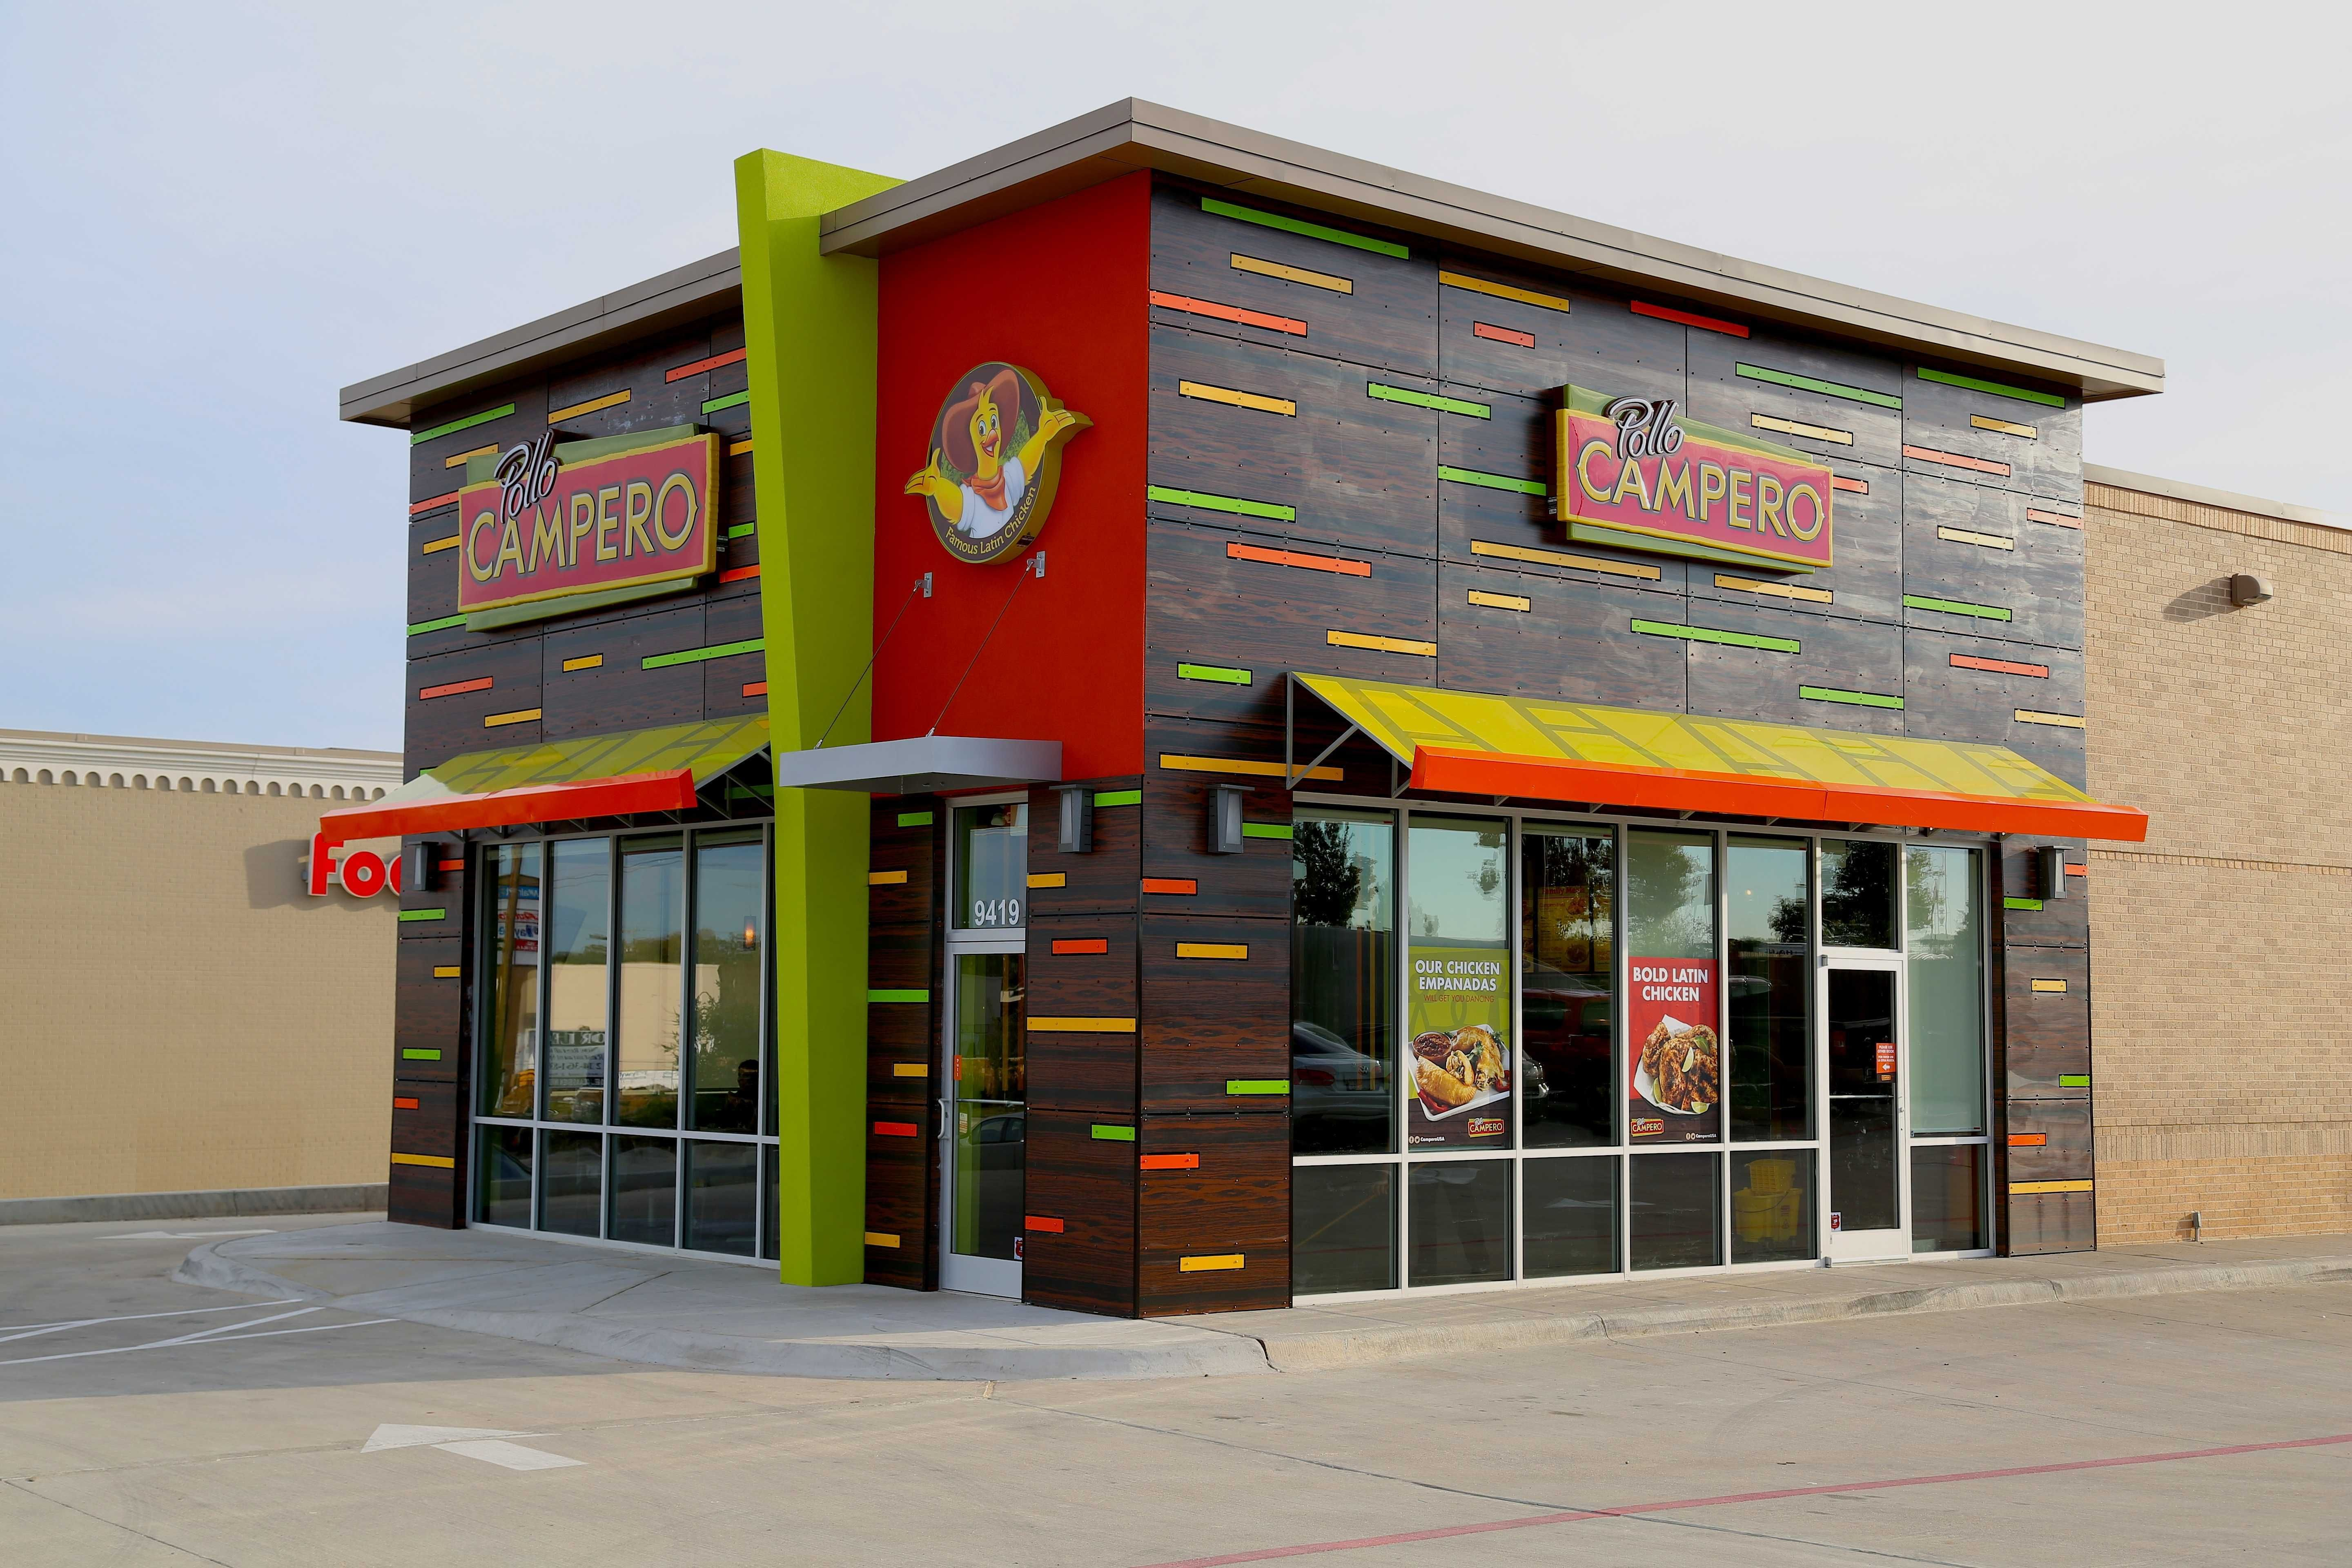 Outstanding fast food restaurant design ideas including